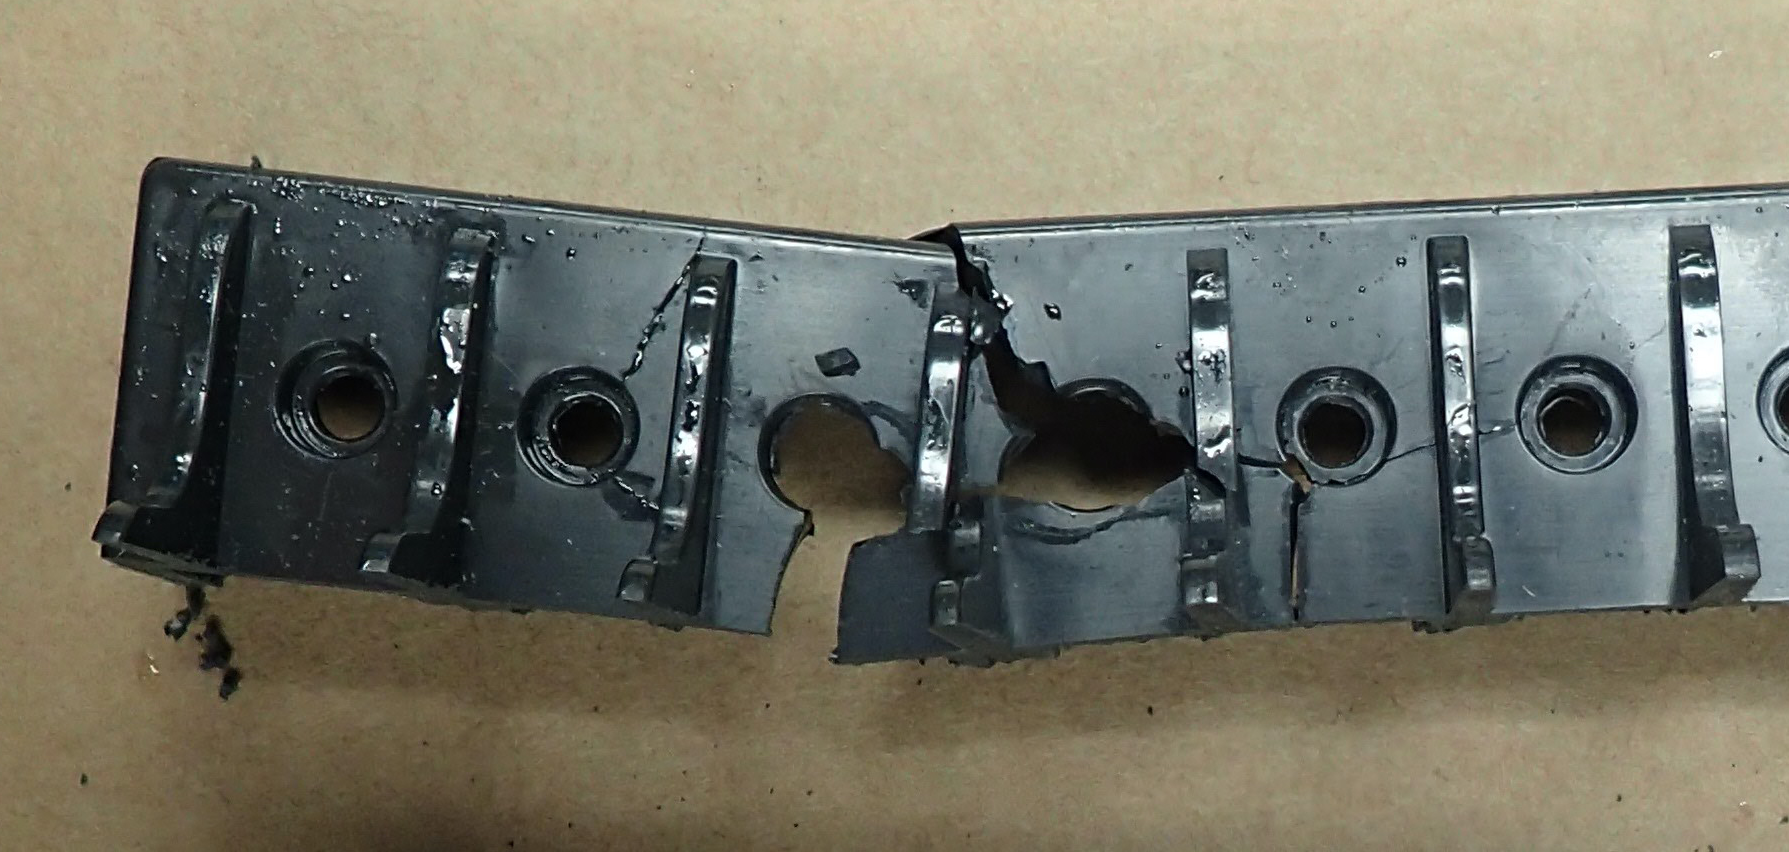 Assembly After Cutting